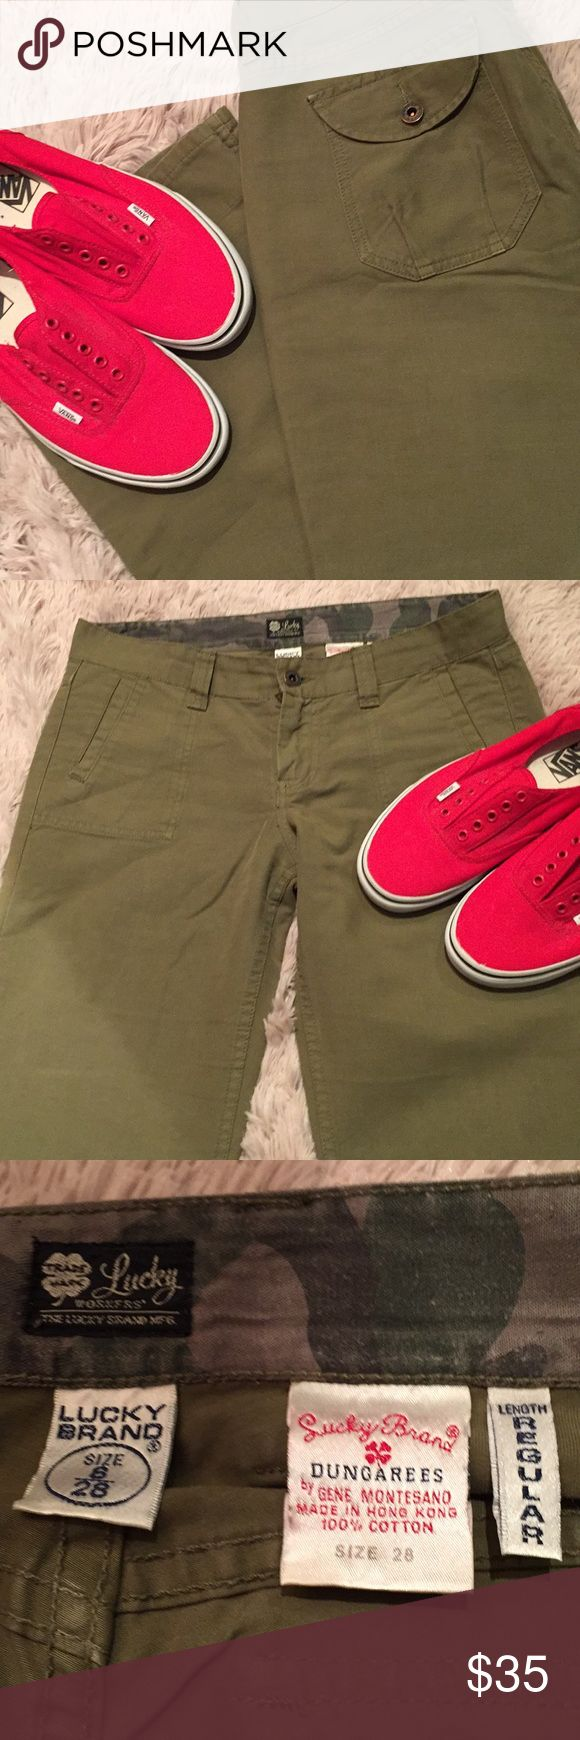 "NWOT! LUCKY BRAND - Cargo Pants in Olive Green These have never been worn.  Great color and in perfect condition!  Bundle and save! 32"" inseam Lucky Brand Pants"